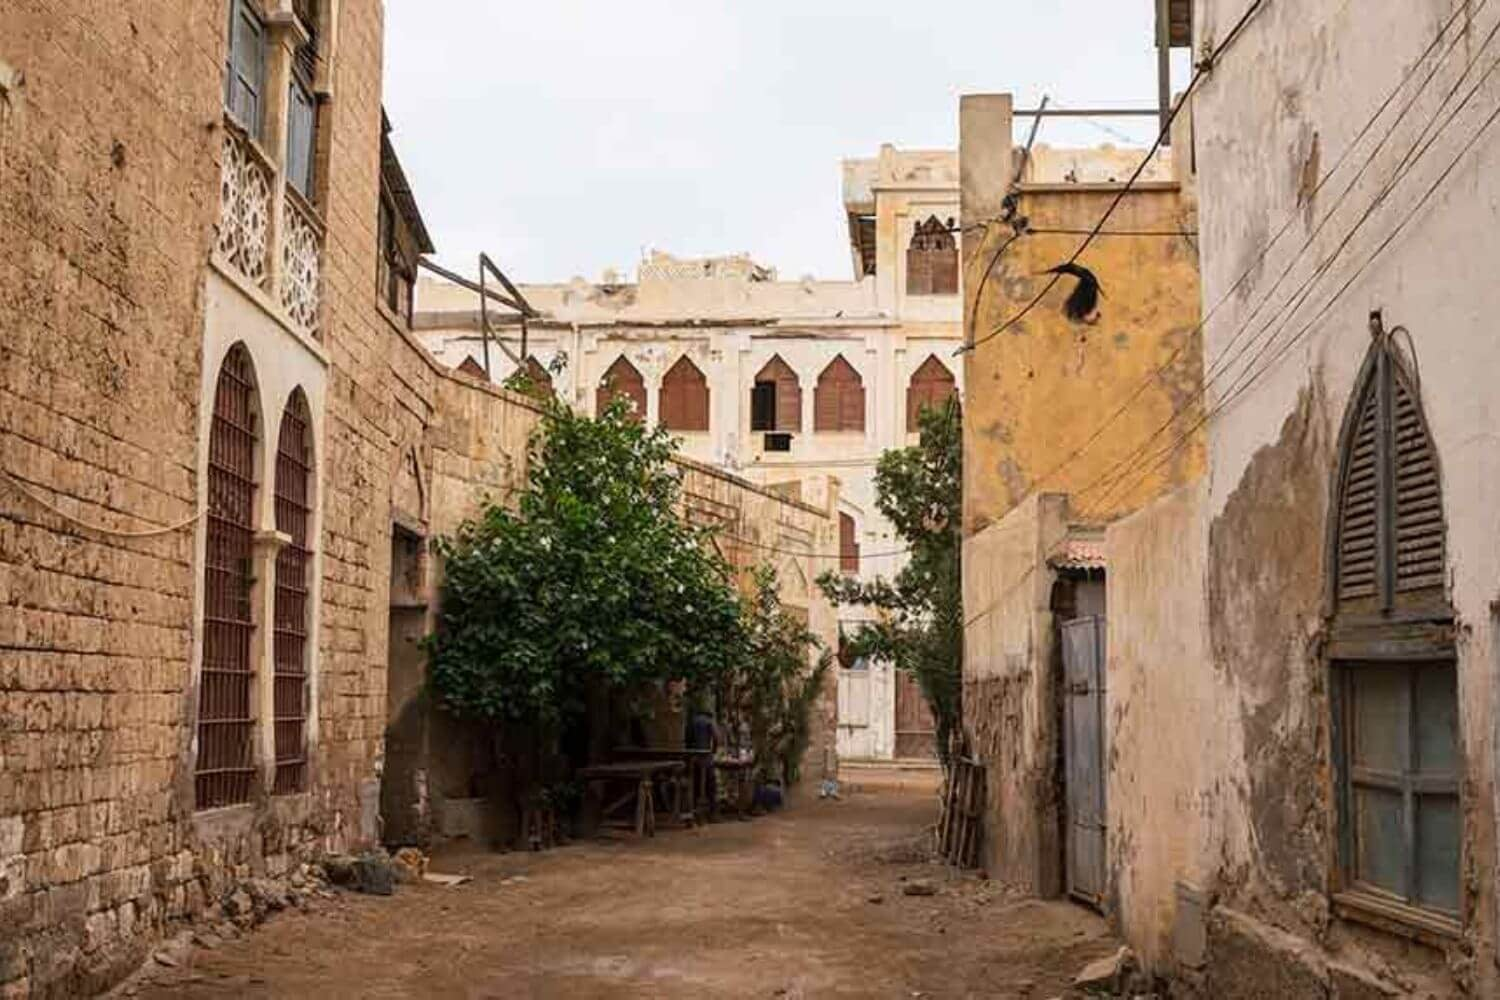 11Massawa old town - Things to see and do in Eritrea